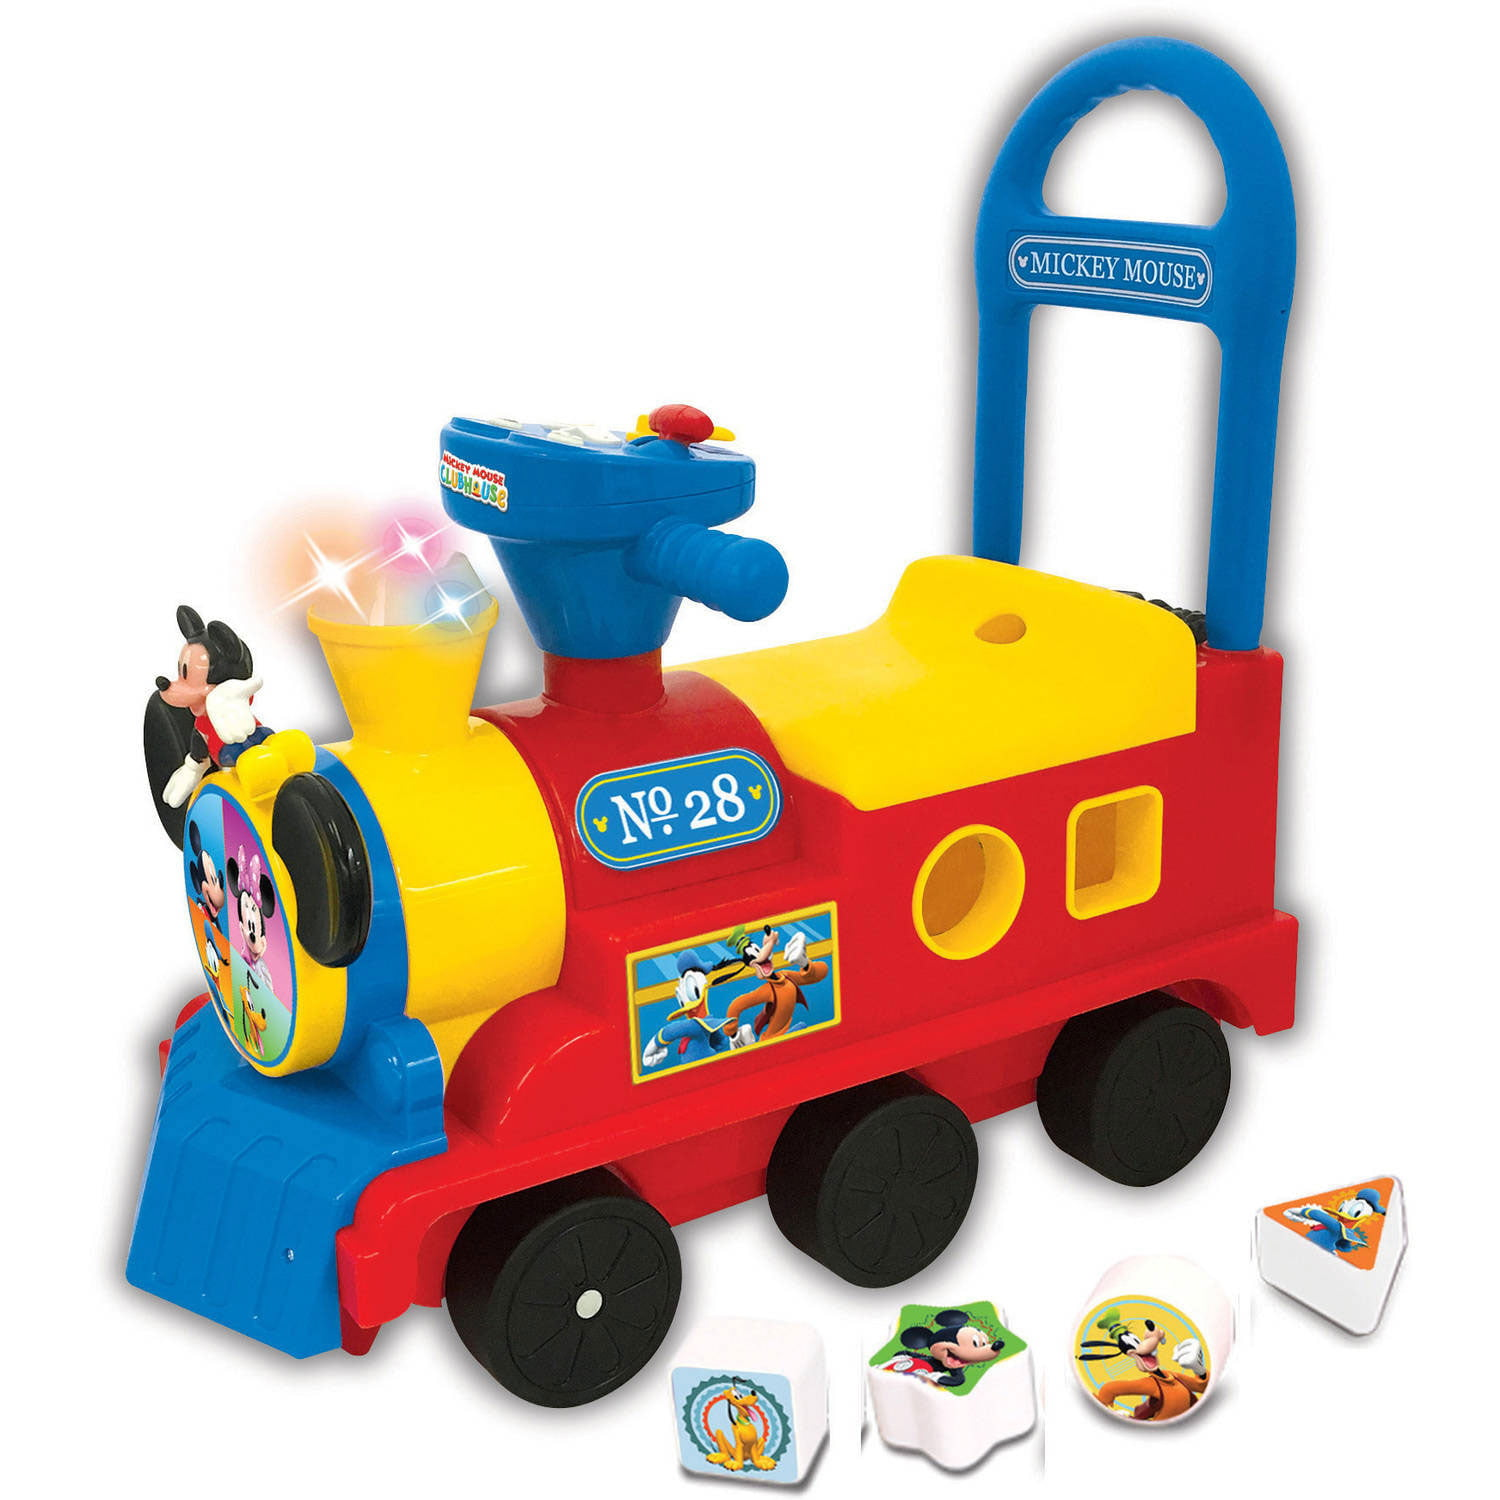 Kiddieland Disney Mickey Mouse Clubhouse Play n' Sort Activity Train Ride-On by Kiddieland